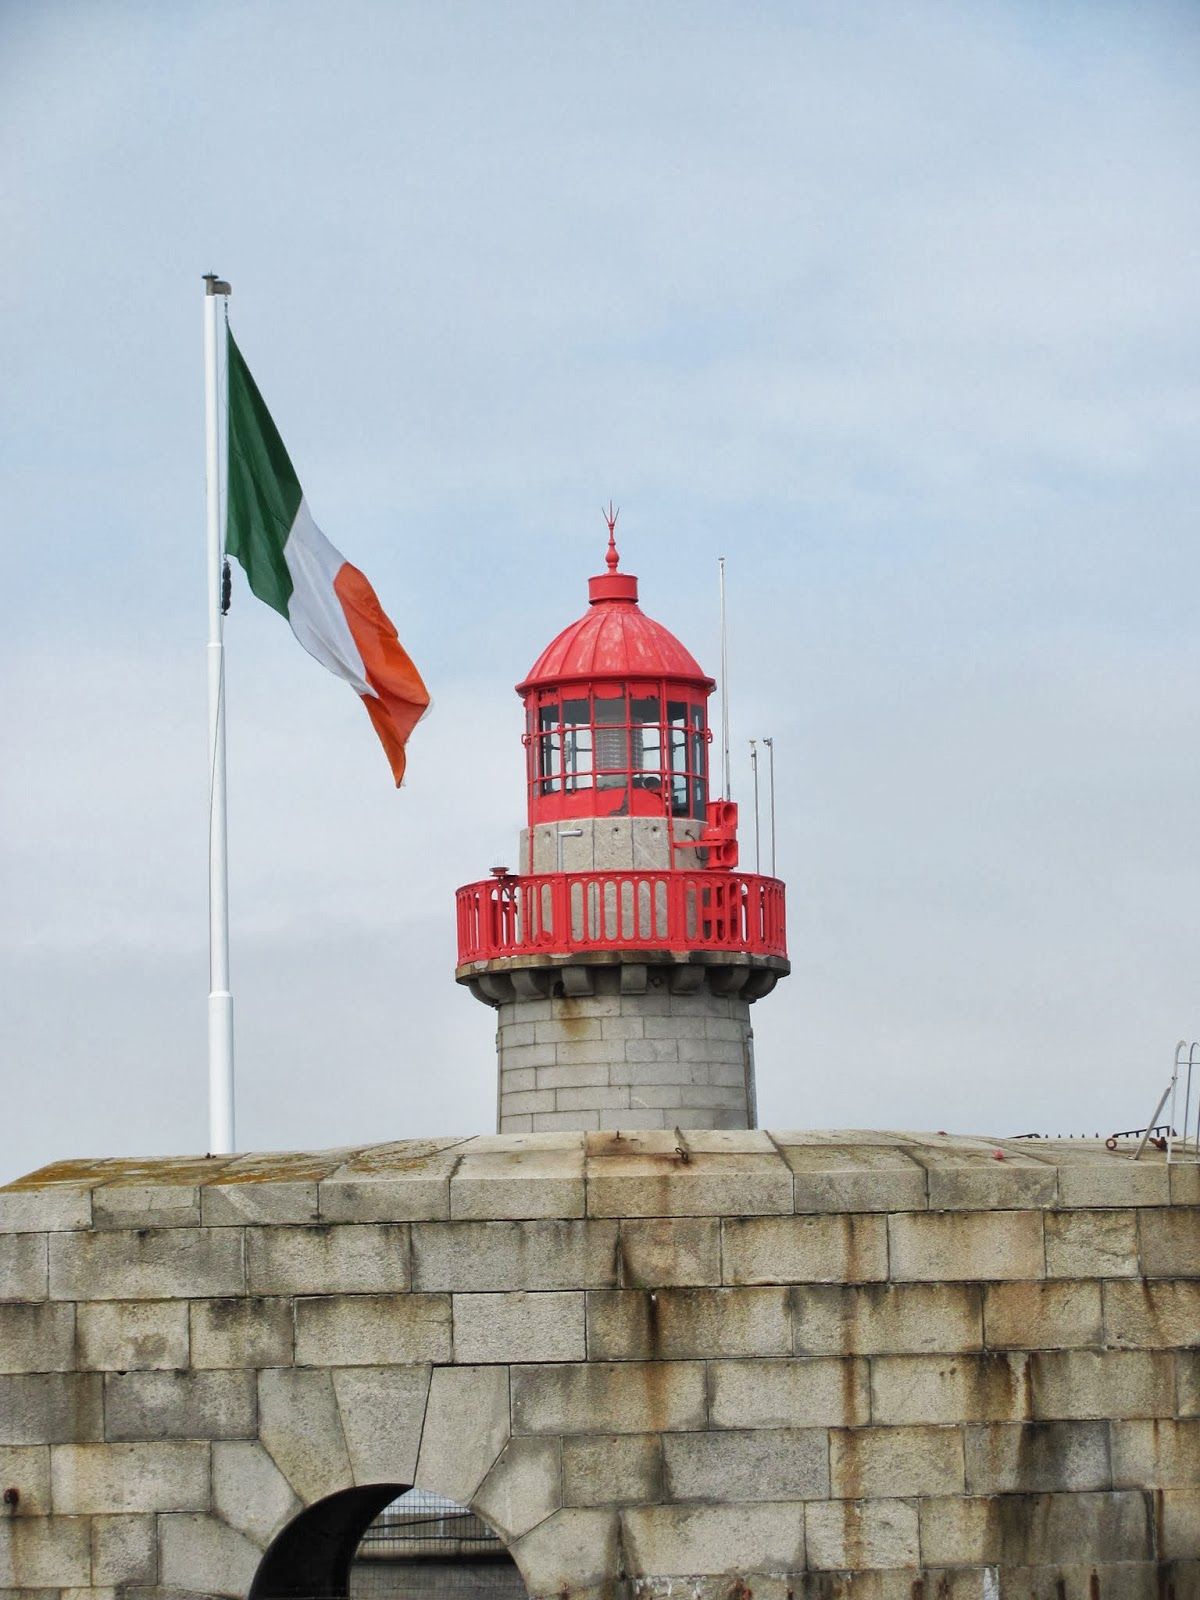 The lighthouse and the Irish National Flag on the pier at Dun Laoghaire, Co. Dublin, Ireland